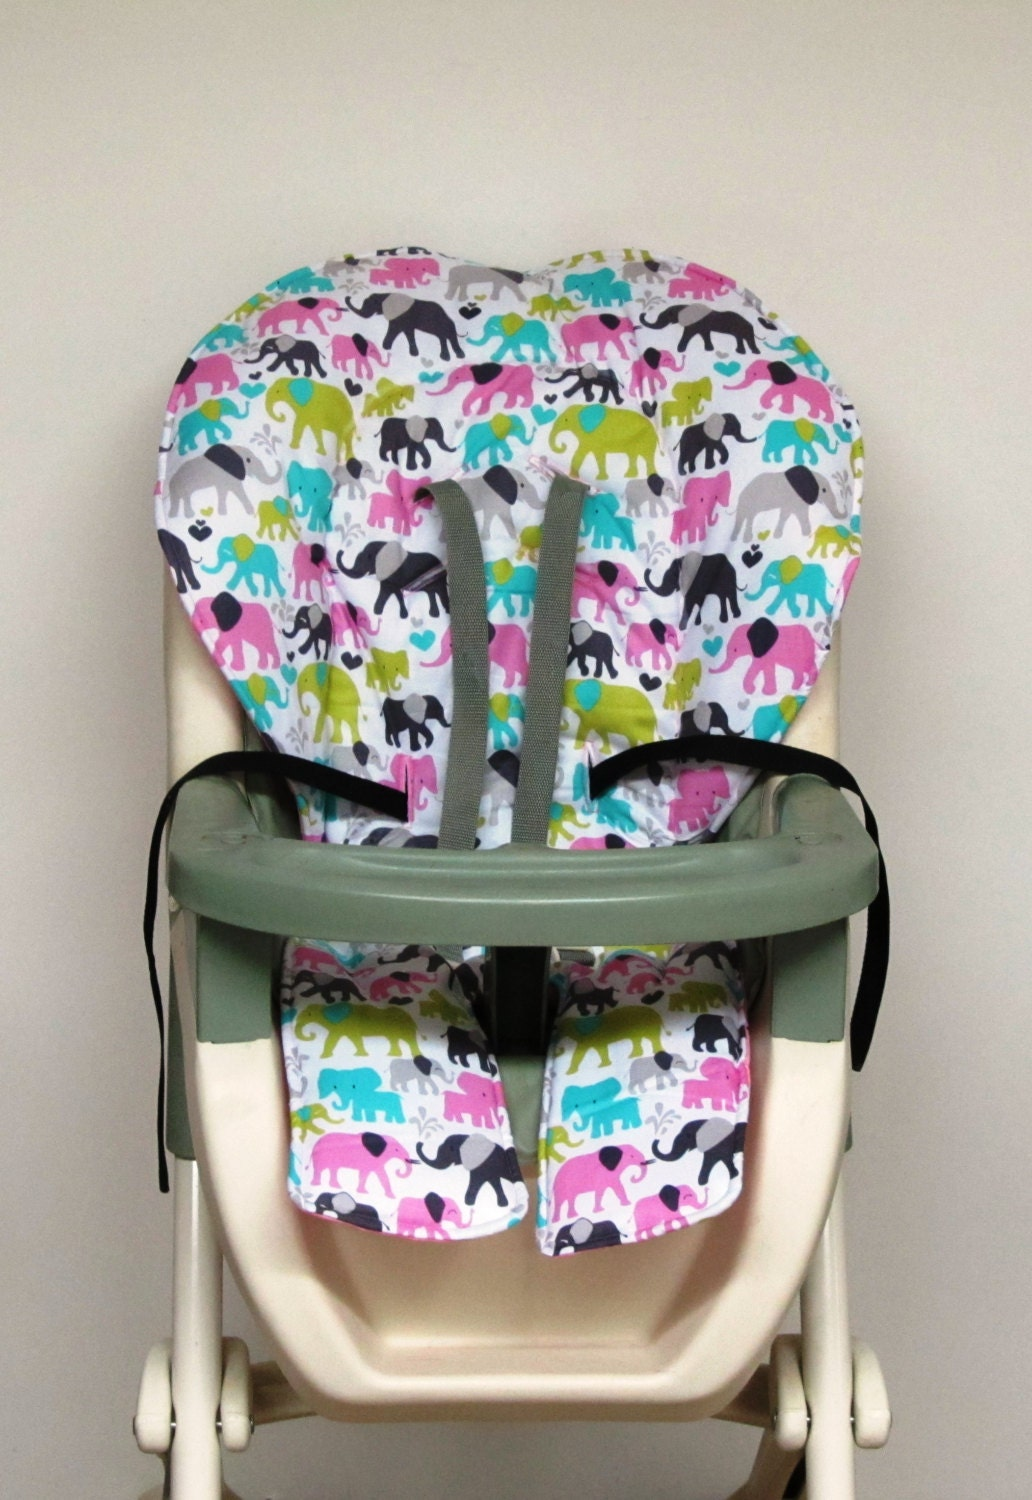 graco high chair cover kids and baby feeding chair pad baby. Black Bedroom Furniture Sets. Home Design Ideas